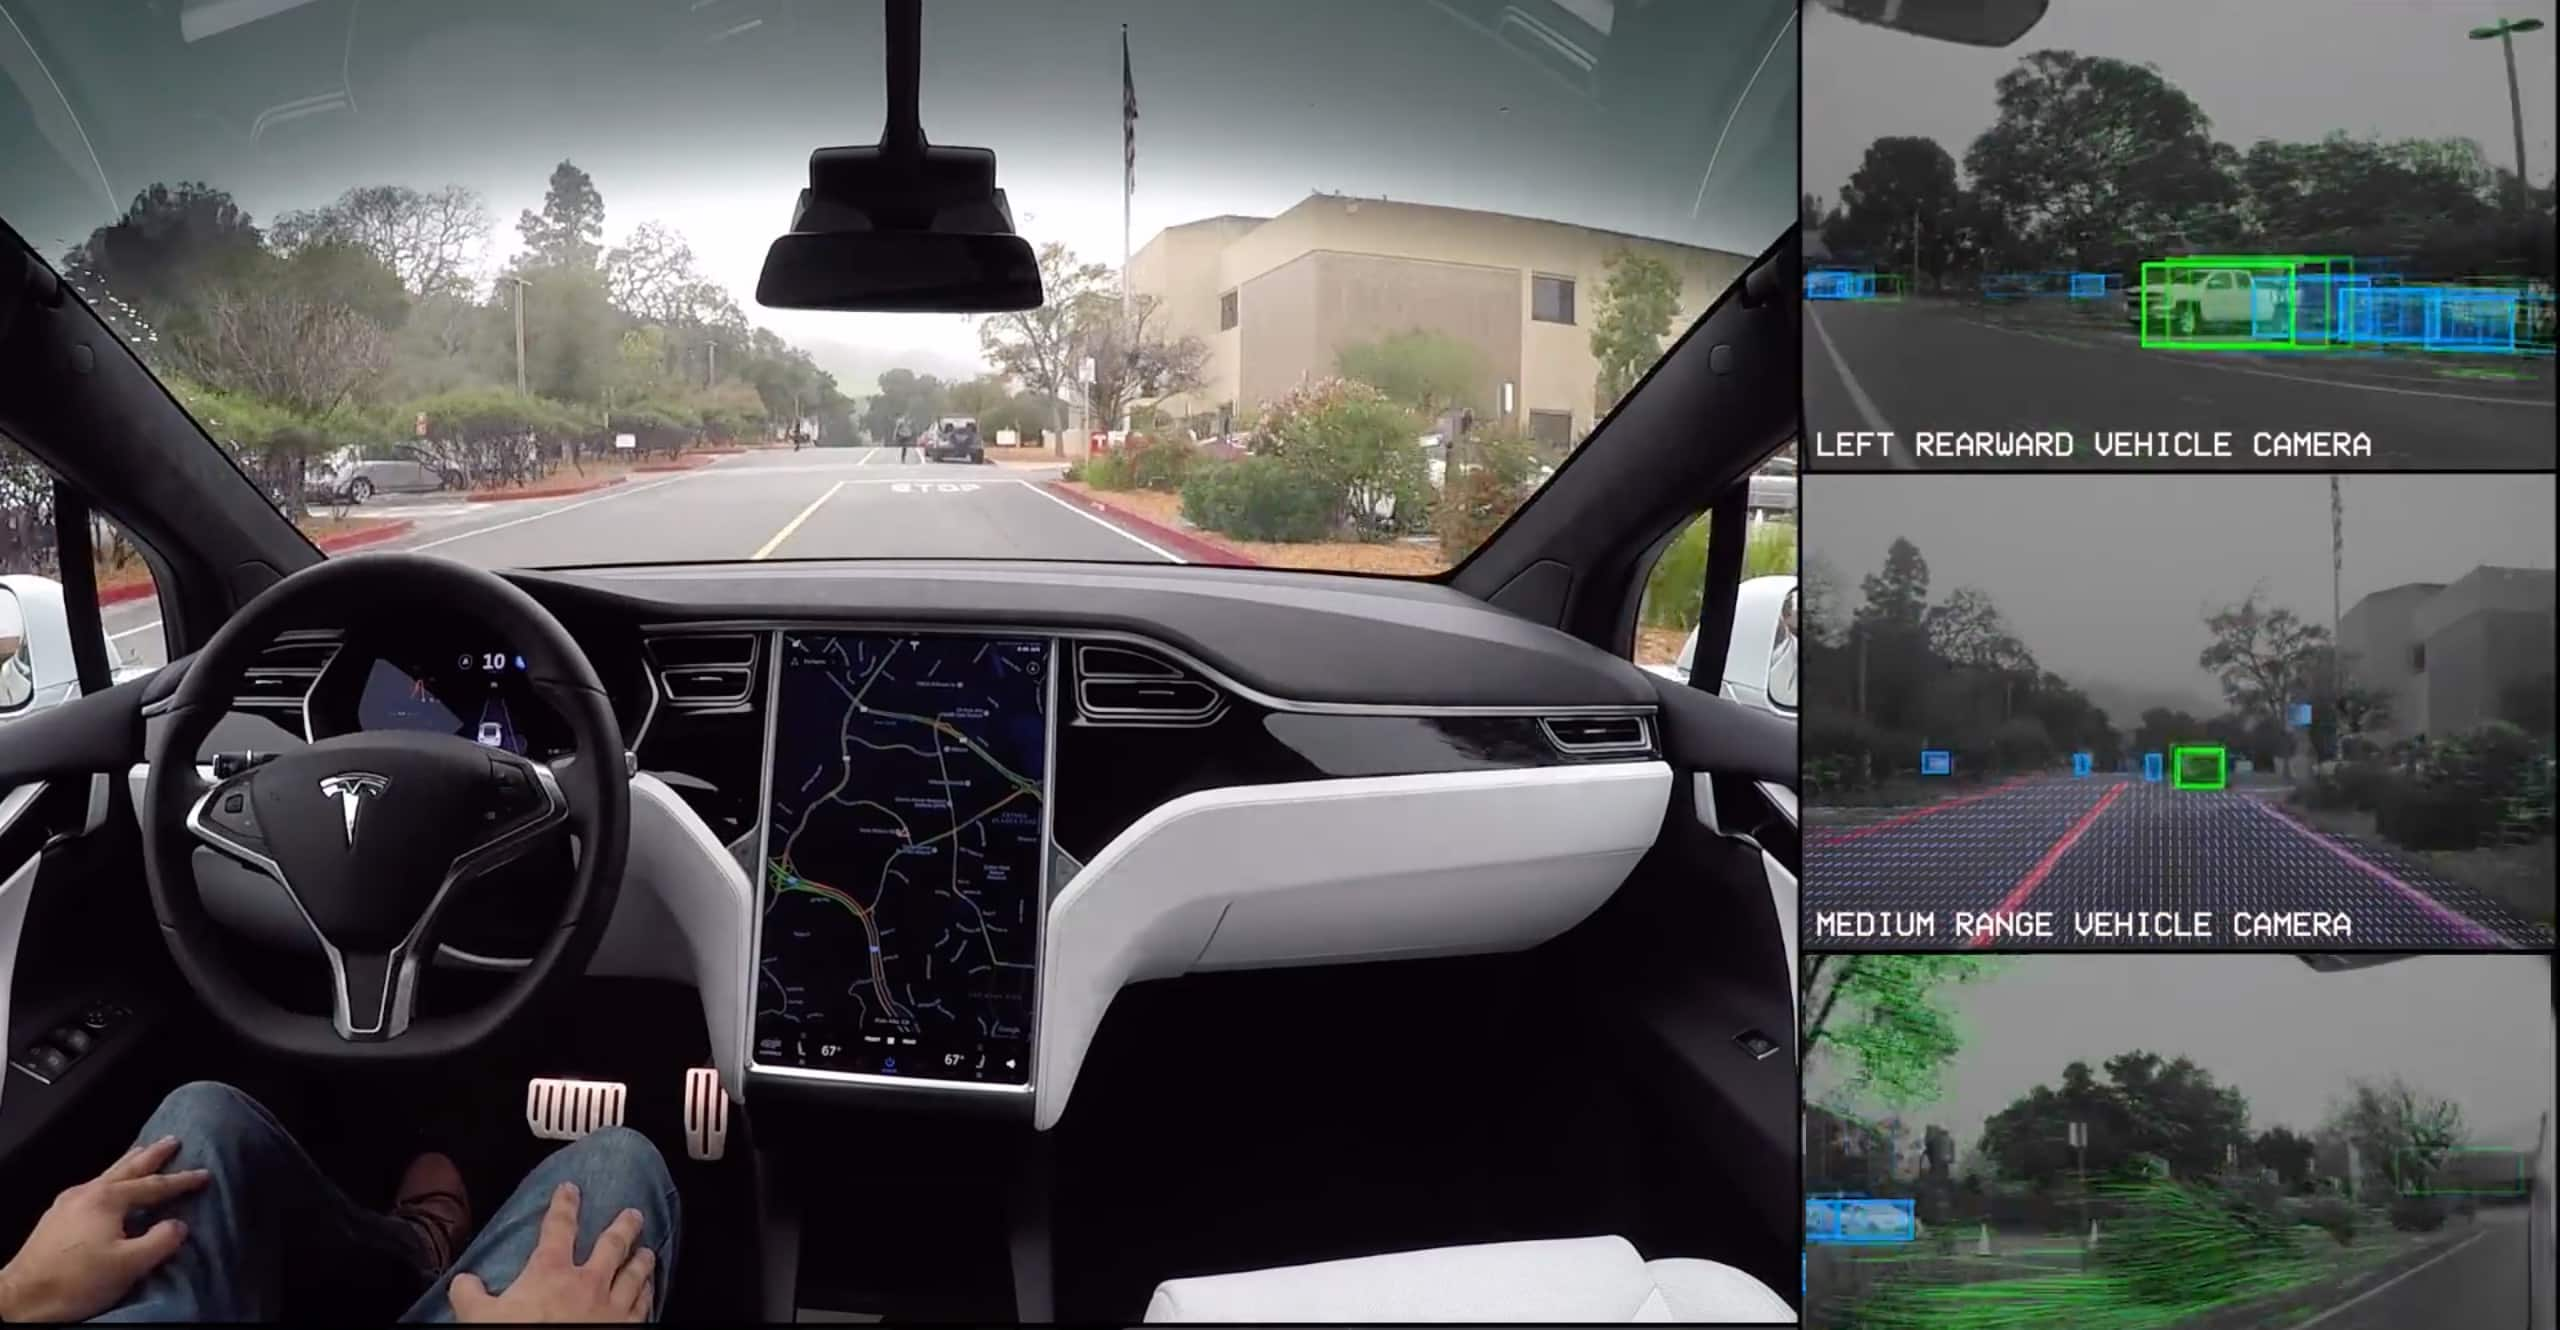 Tesla Self-Driving Demonstration | Tesla UK